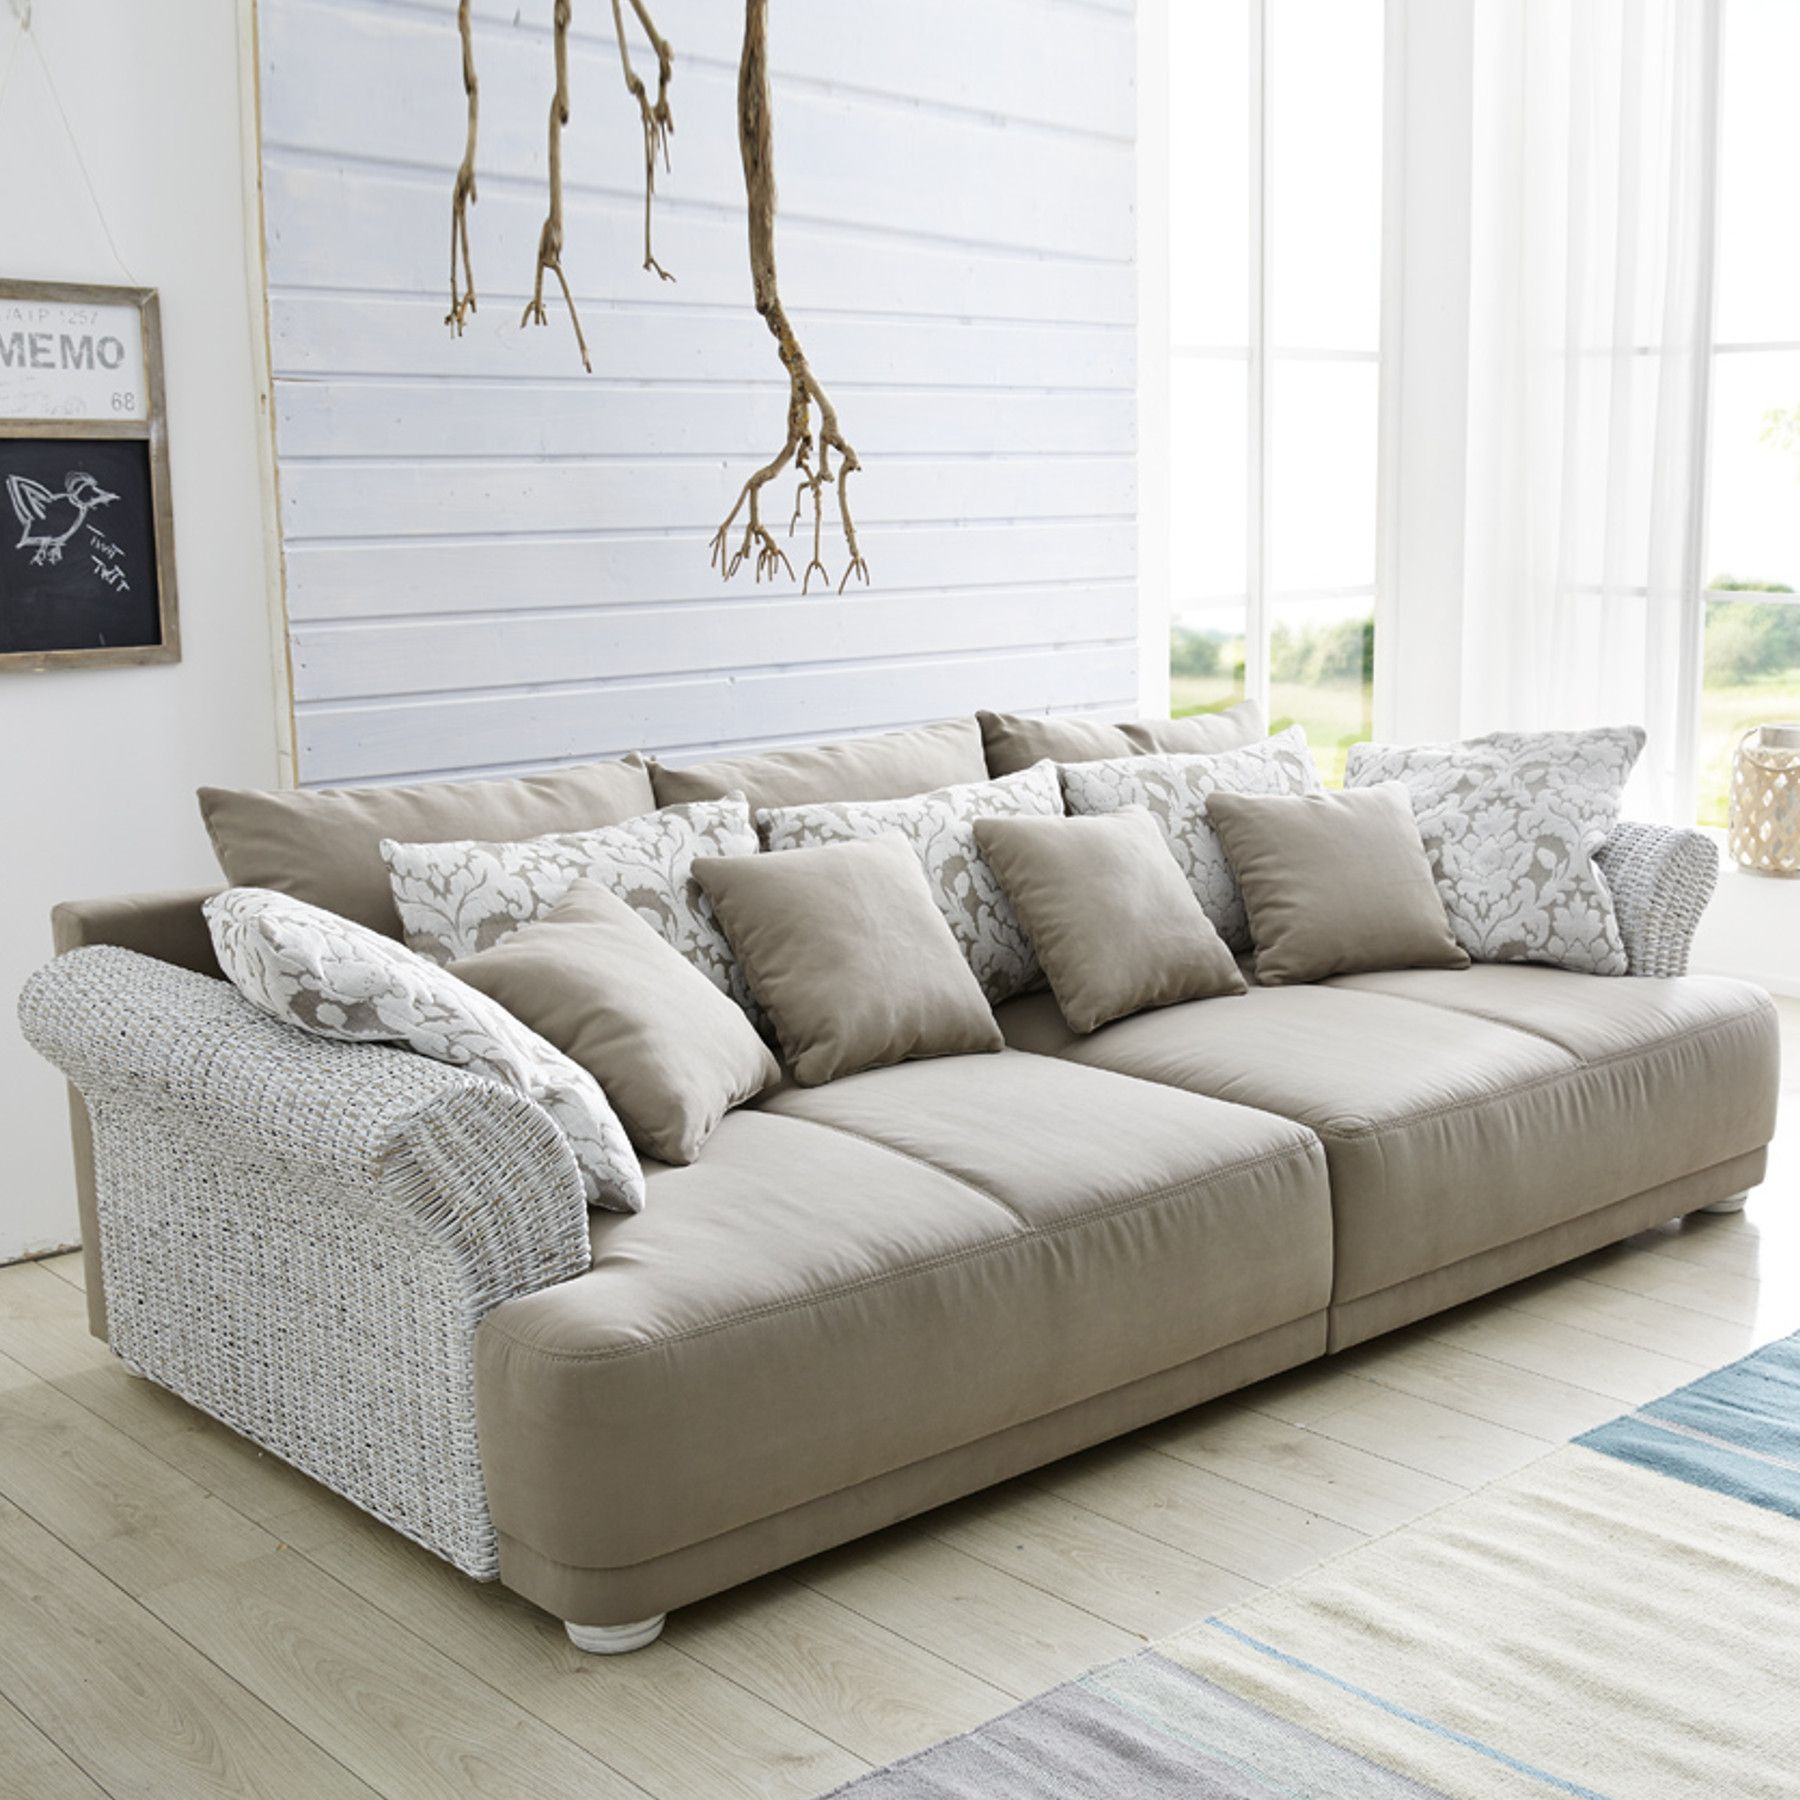 Full Size of Riess Ambiente Couchtisch Gold Weiss Sofa Heaven Kent Chesterfield Bewertung Couch Industrial Storage Samt Akazie 11 Frisch Abnehmbarer Bezug Hocker Rotes Sofa Riess Ambiente Sofa